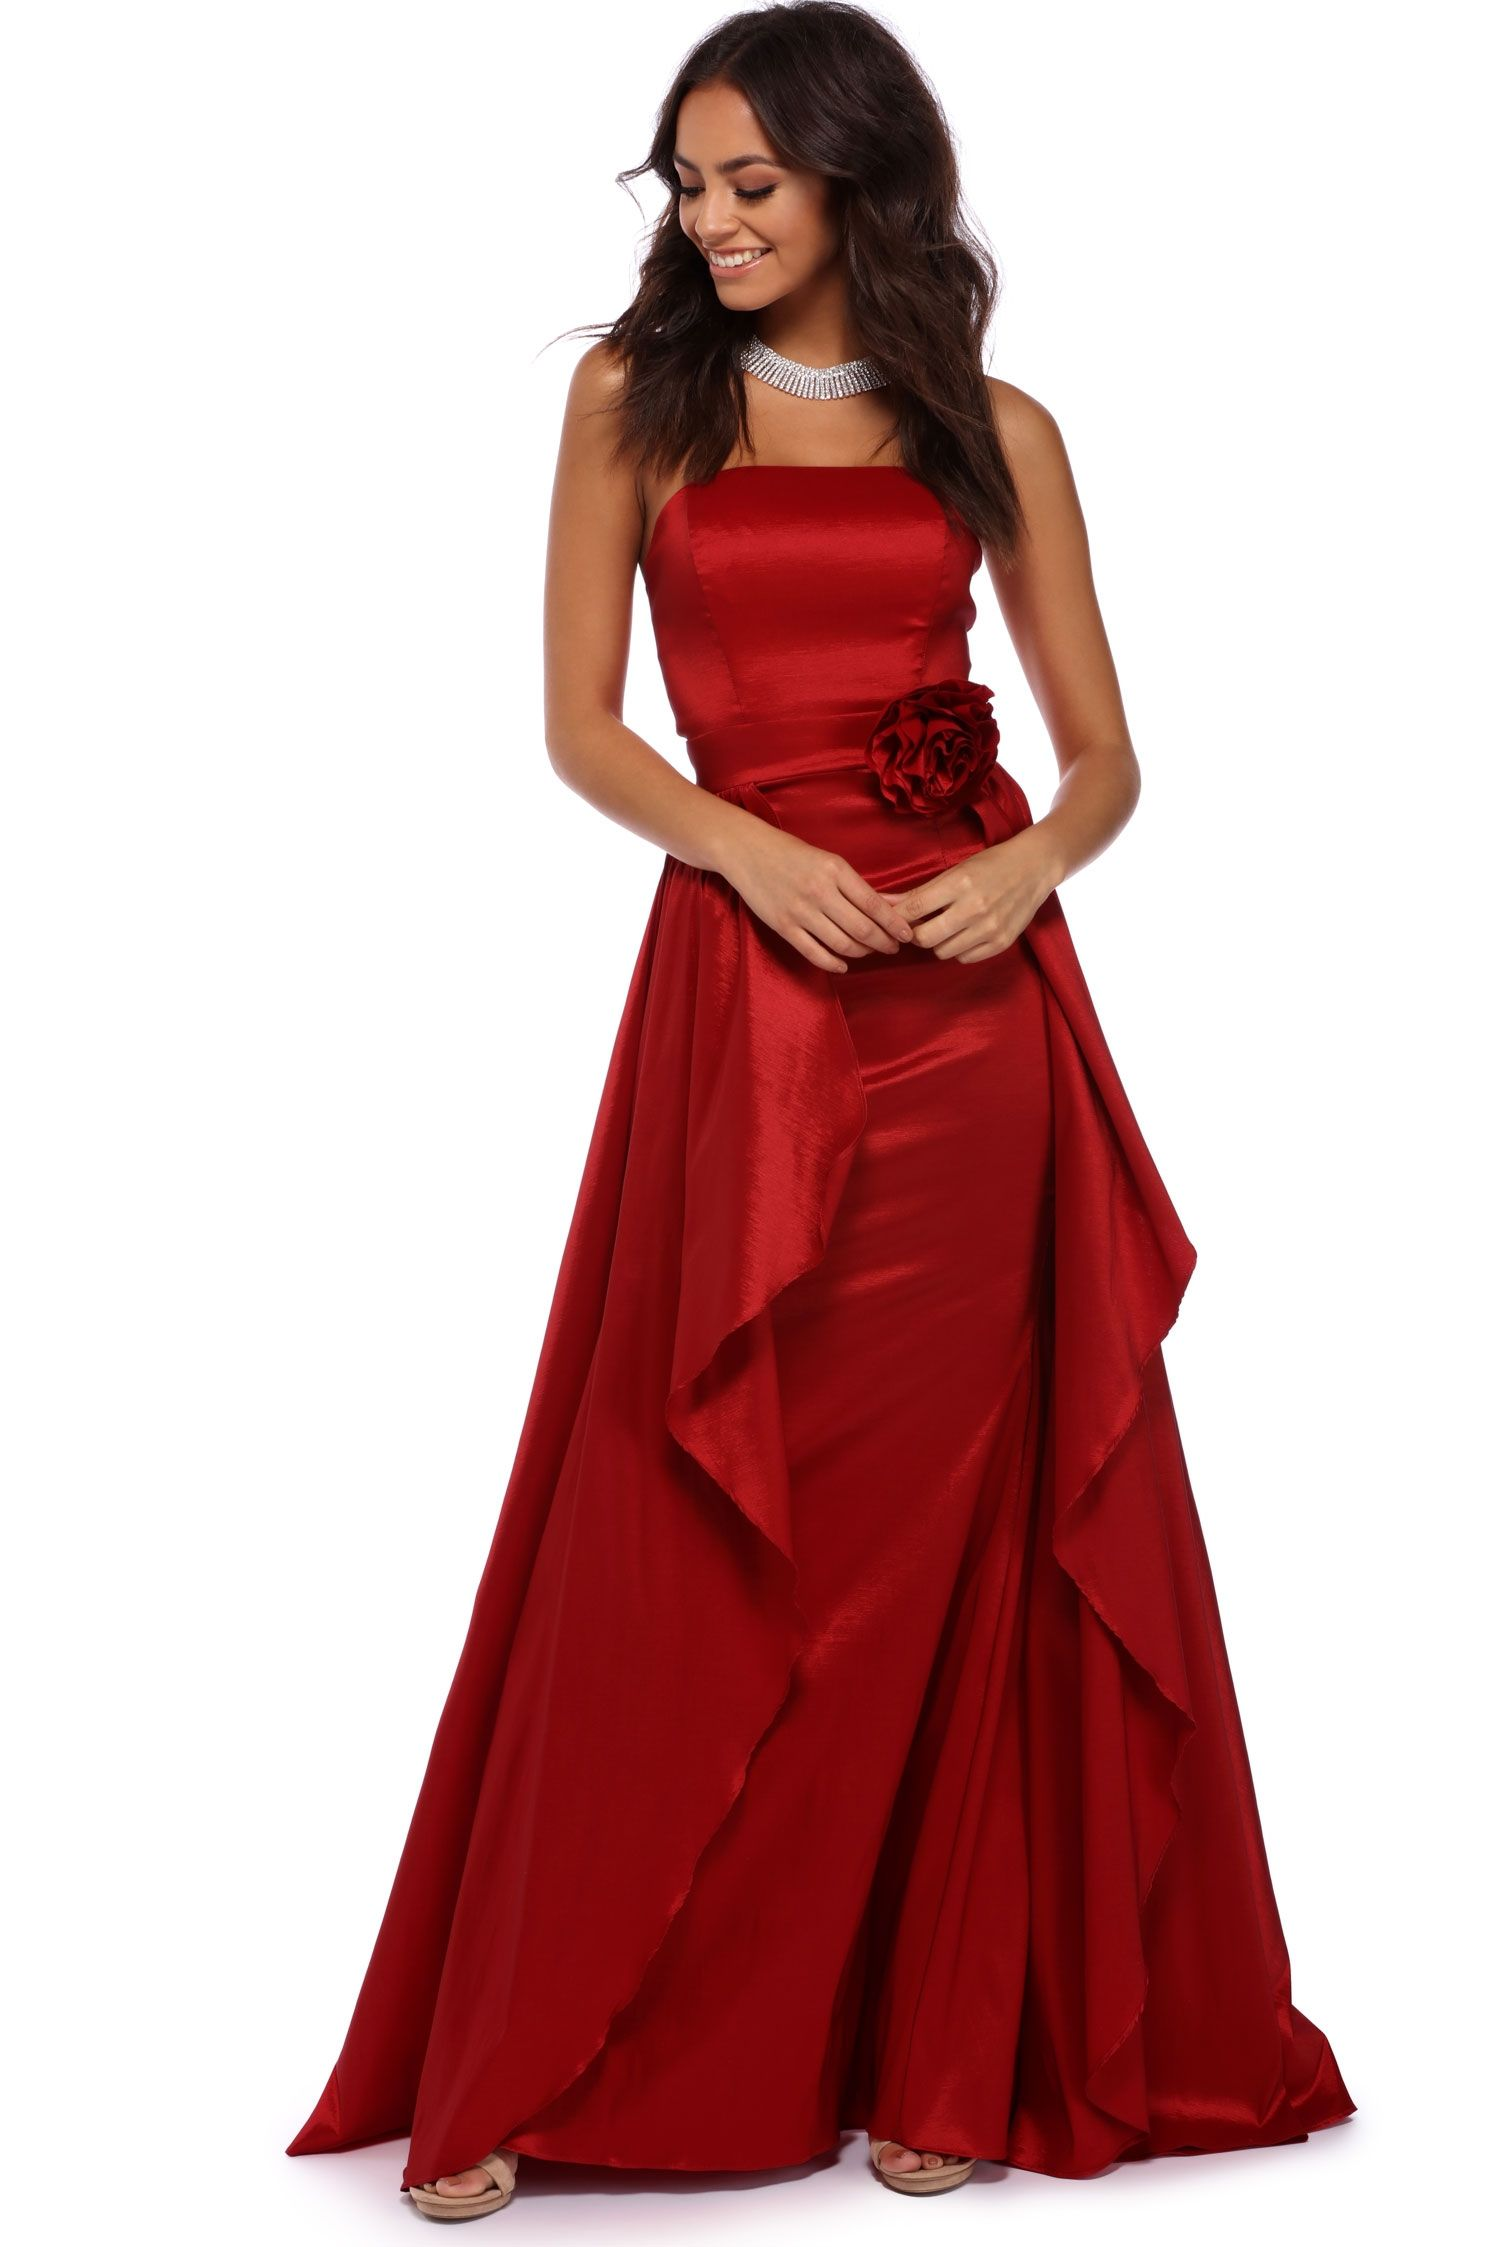 Arabelle Red Strapless Ball Gown | windsor